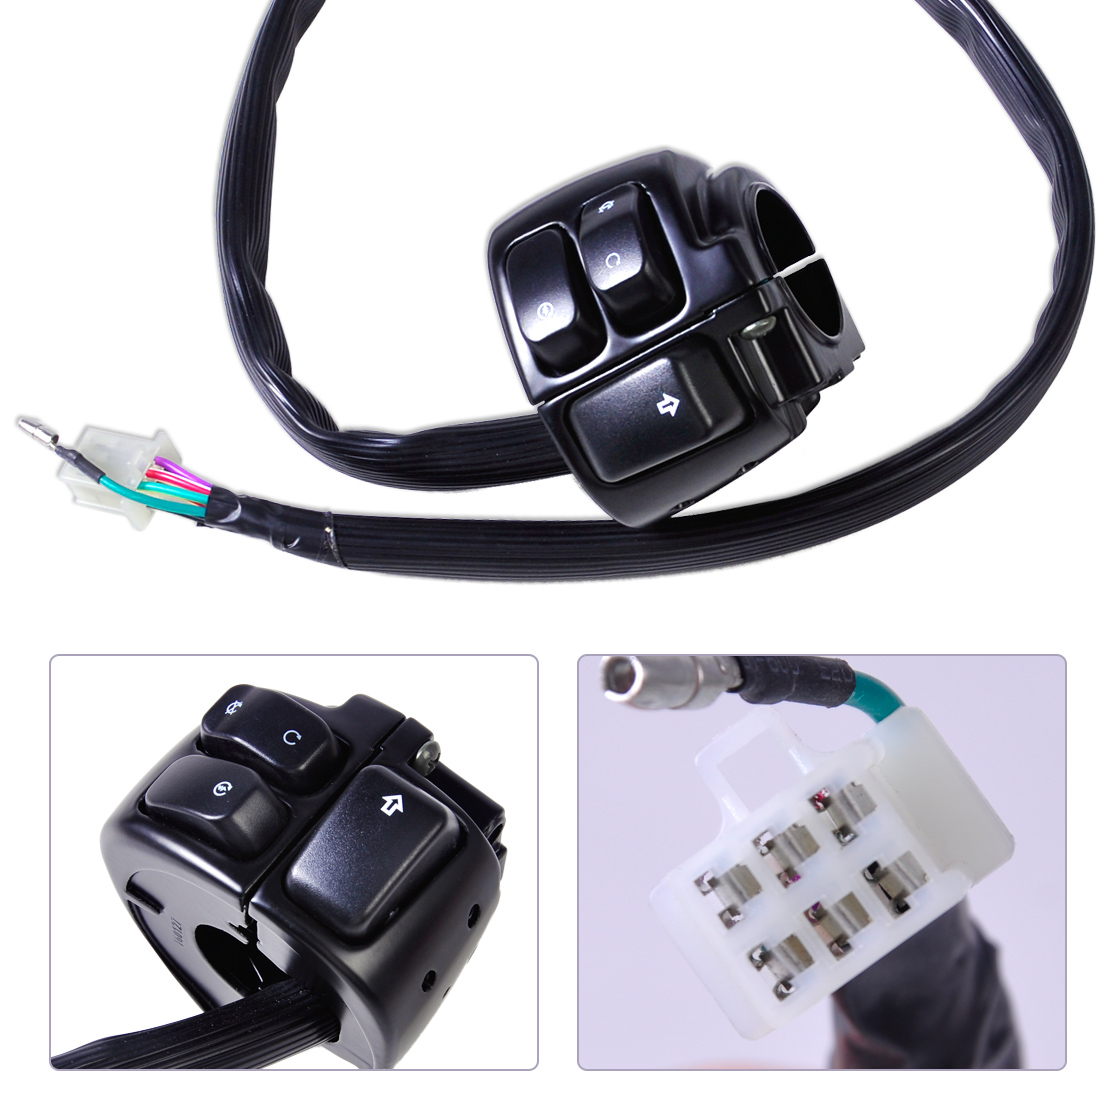 online buy whole motorcycle wiring harness from dwcx motorcycle 1 handlebar ignition turn signal switch wiring harness for harley softail dyna sportster